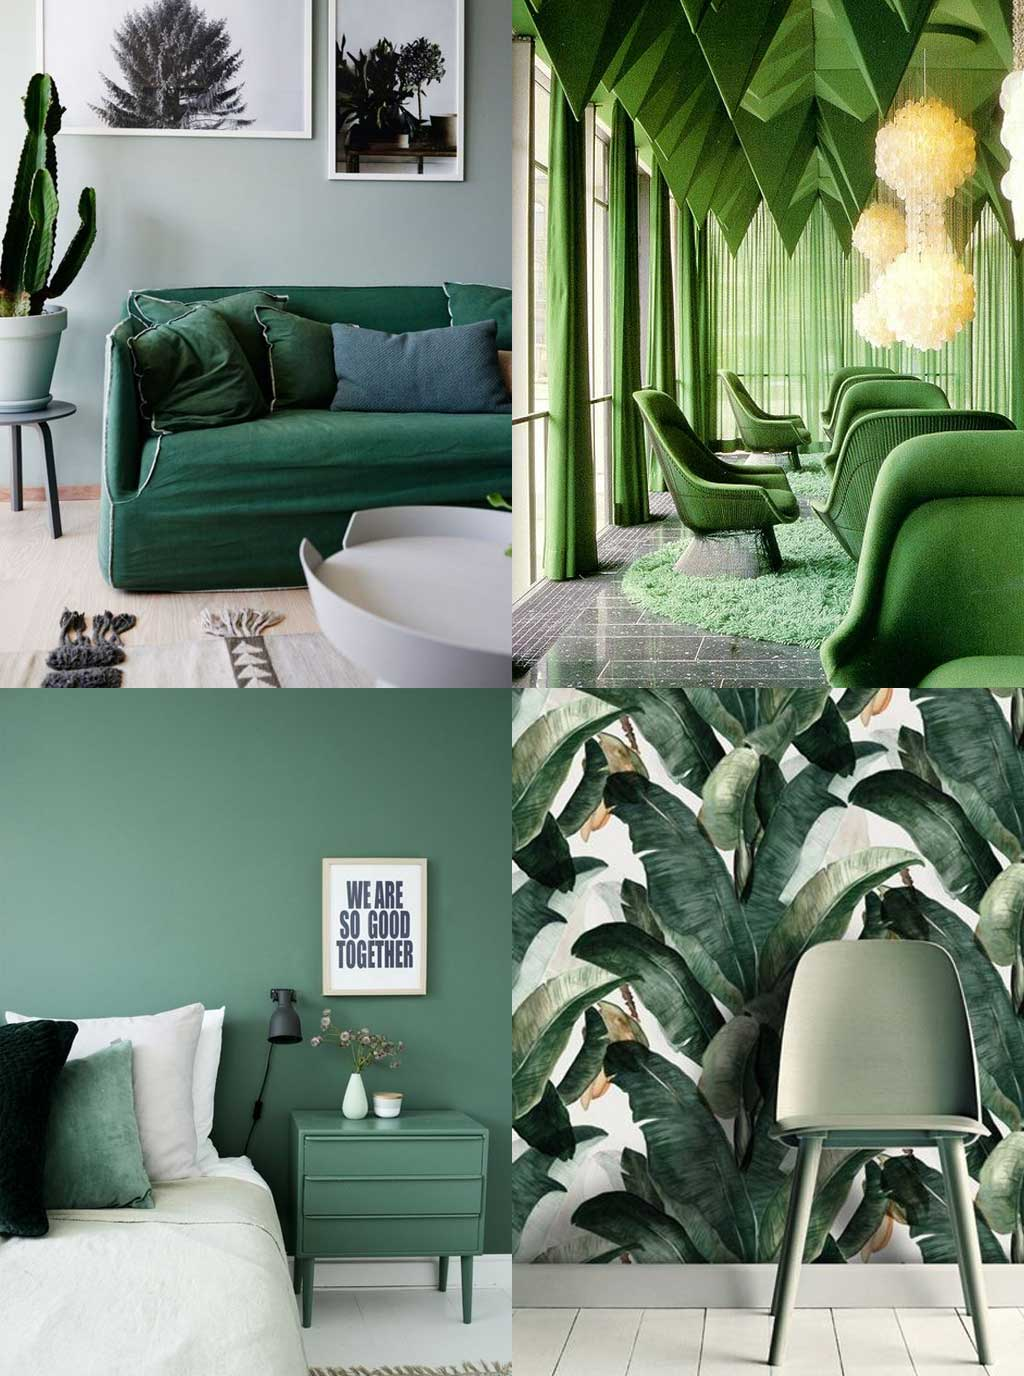 Colour Psychology in Interior Design - Green Rooms - Hutsly Blog